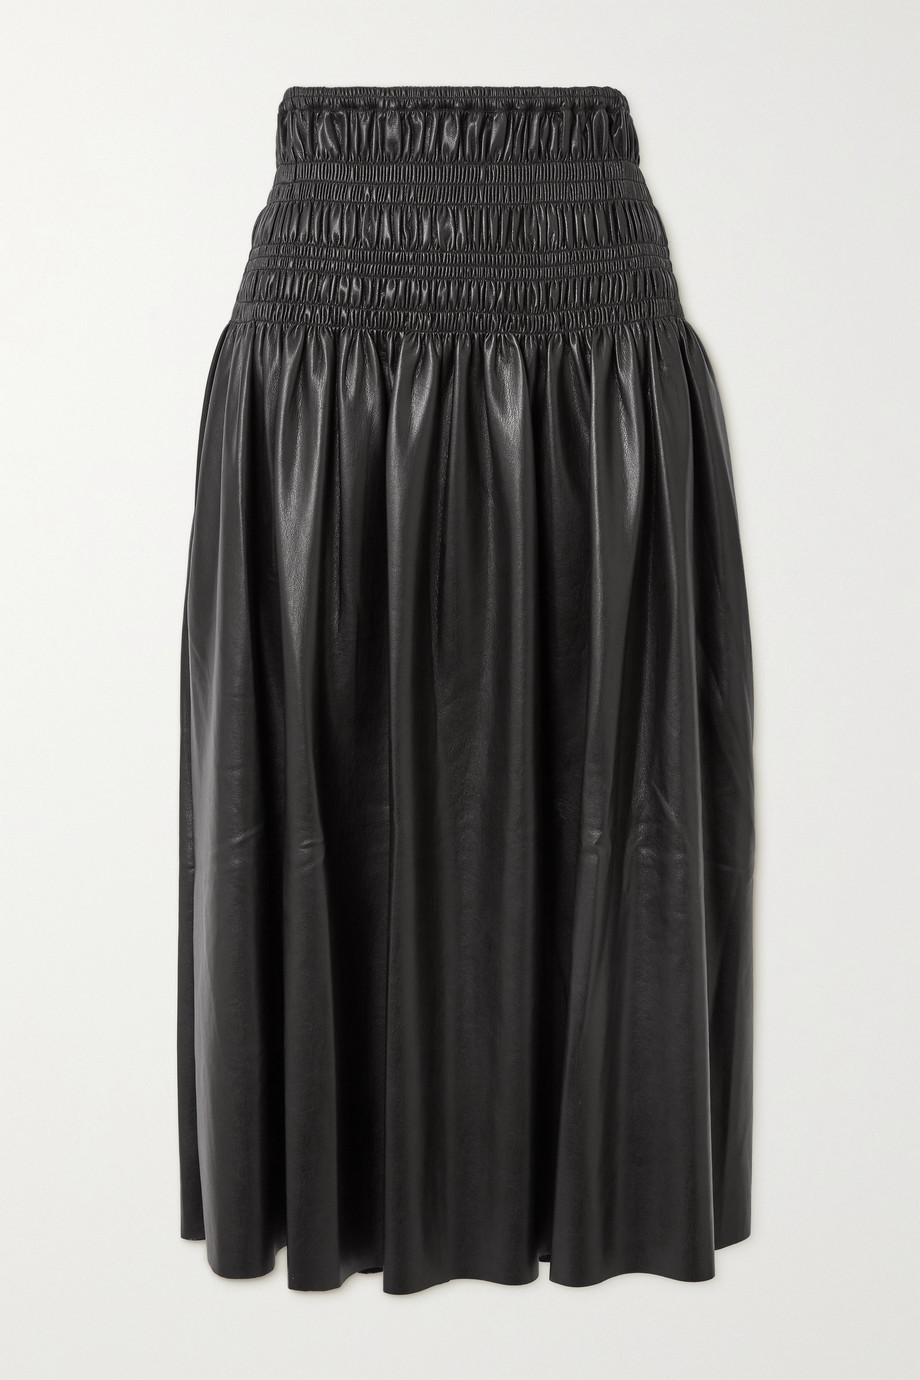 Self-Portrait Shirred faux leather midi skirt